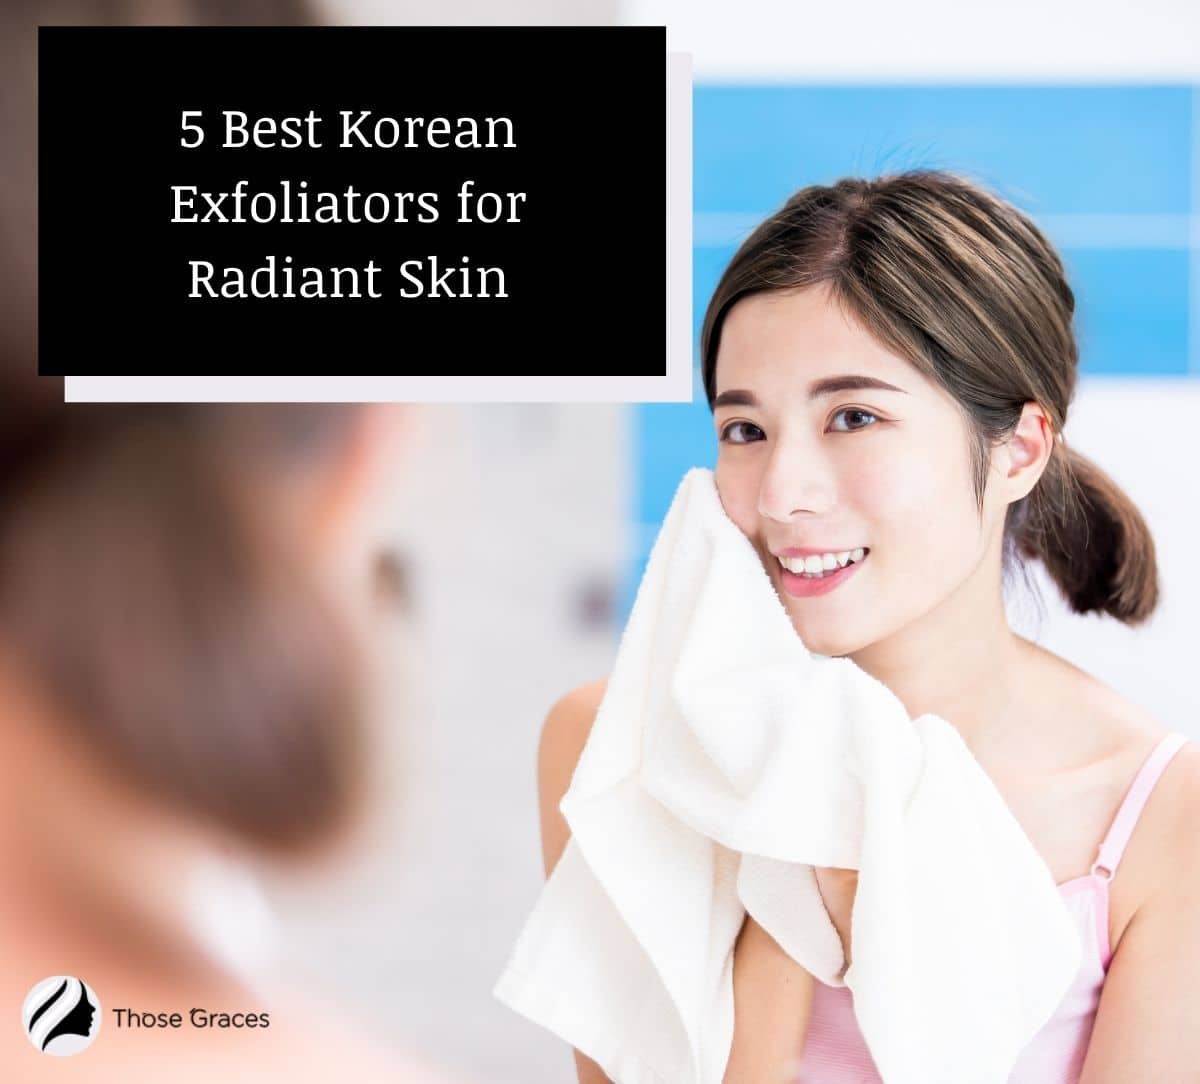 an Asian lady drying her face with a clean towel after using a Korean exfoliator